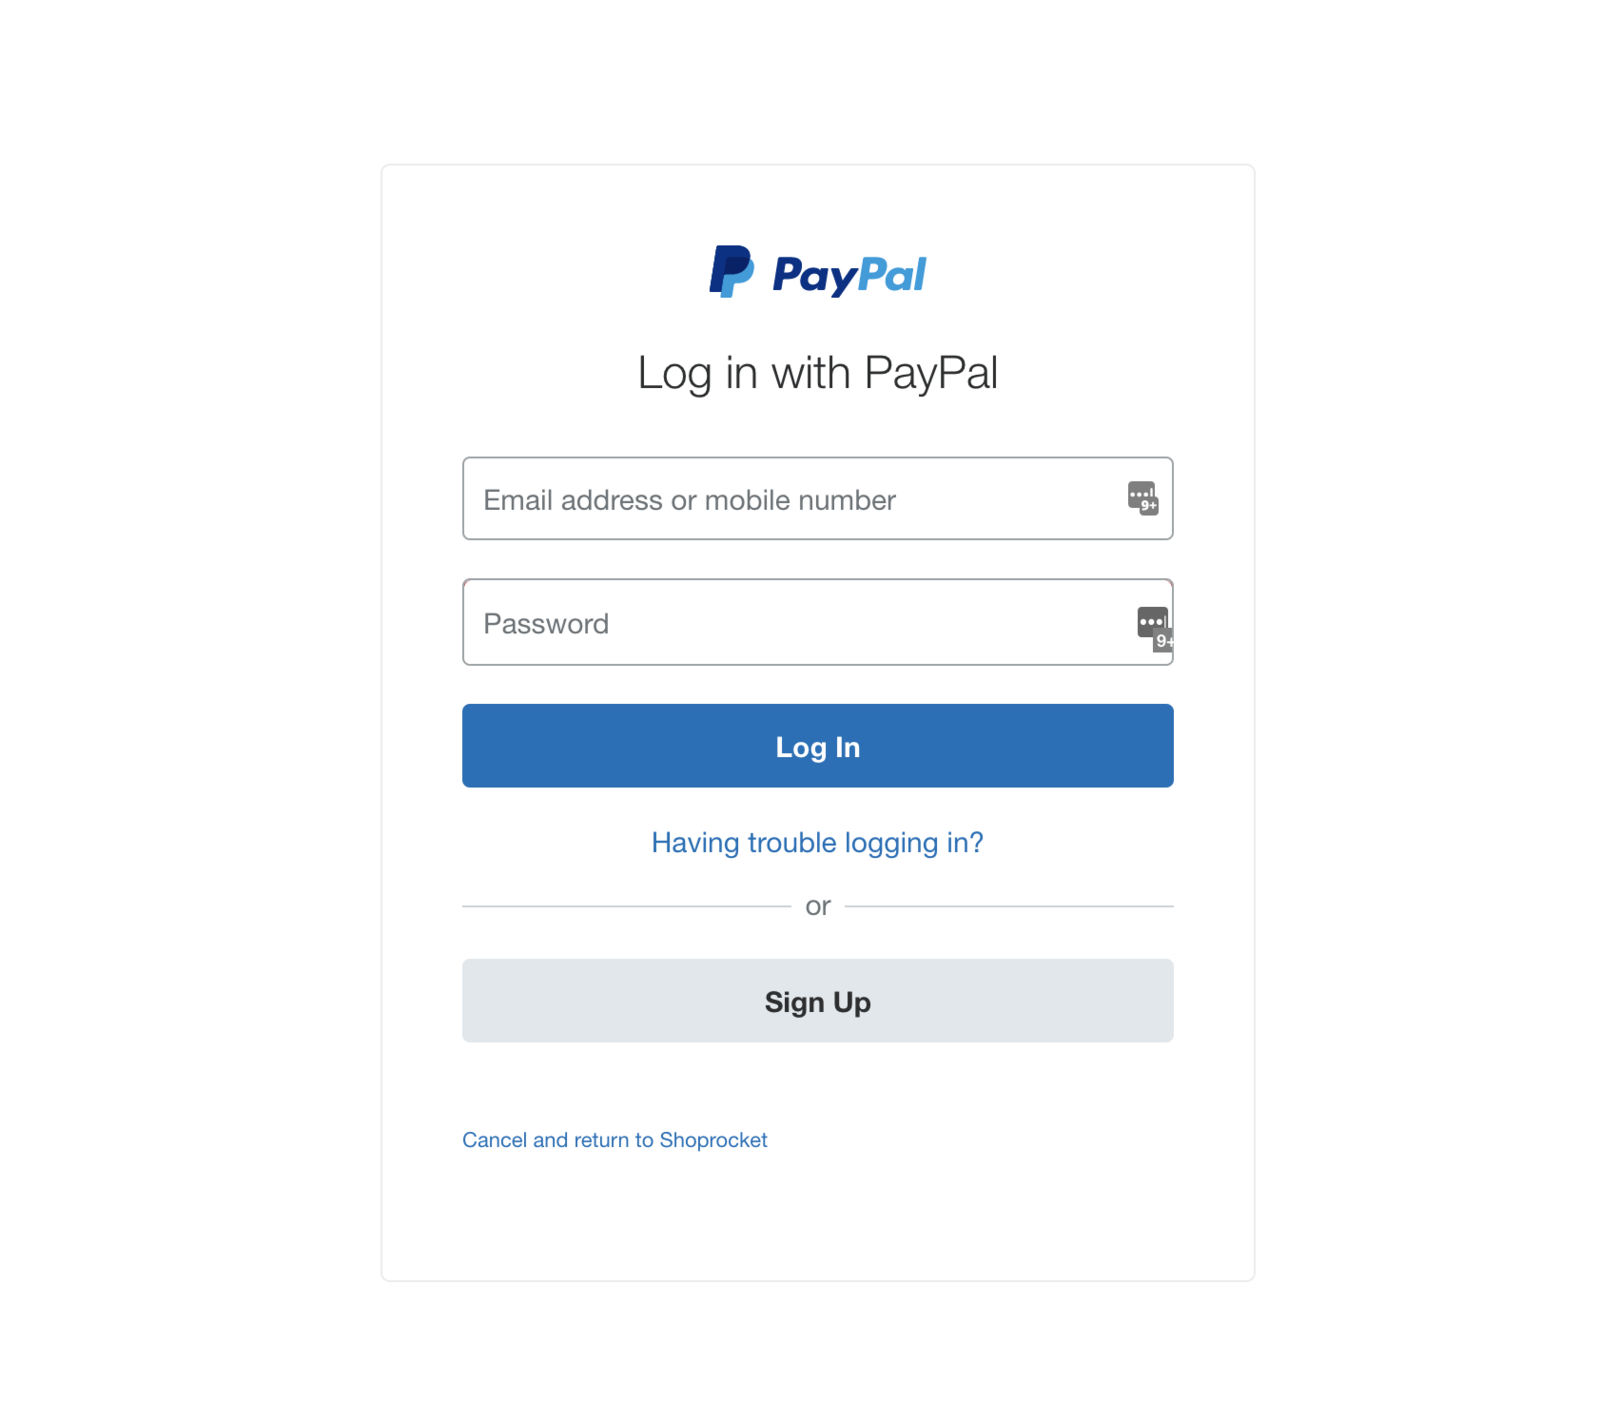 Login to your PayPal account